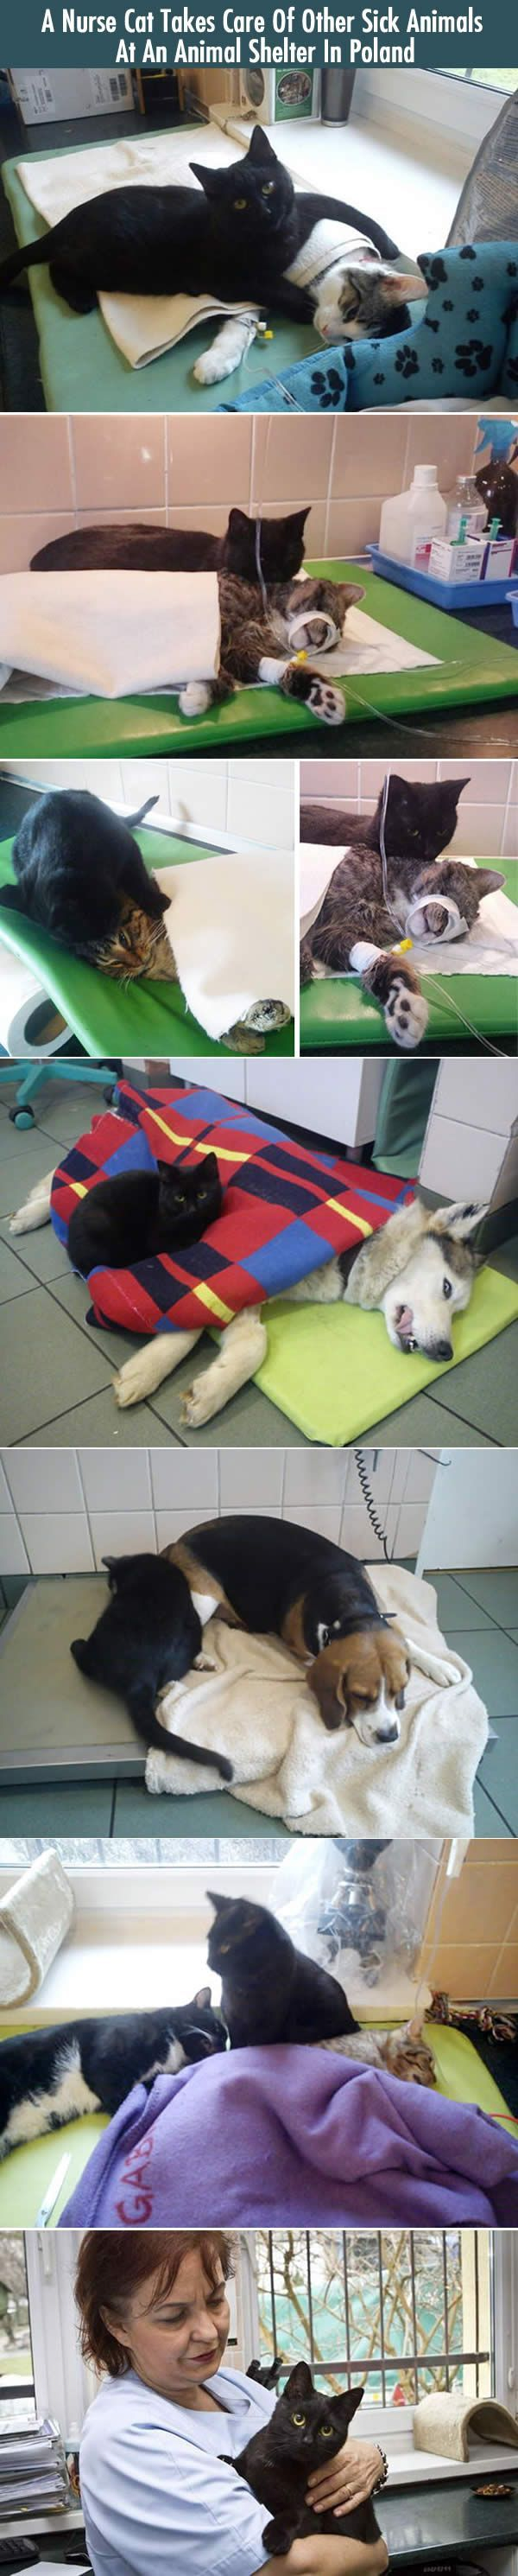 This Incredible Nurse Cat Takes Care Of Other Sick Animals At A Polish Shelter